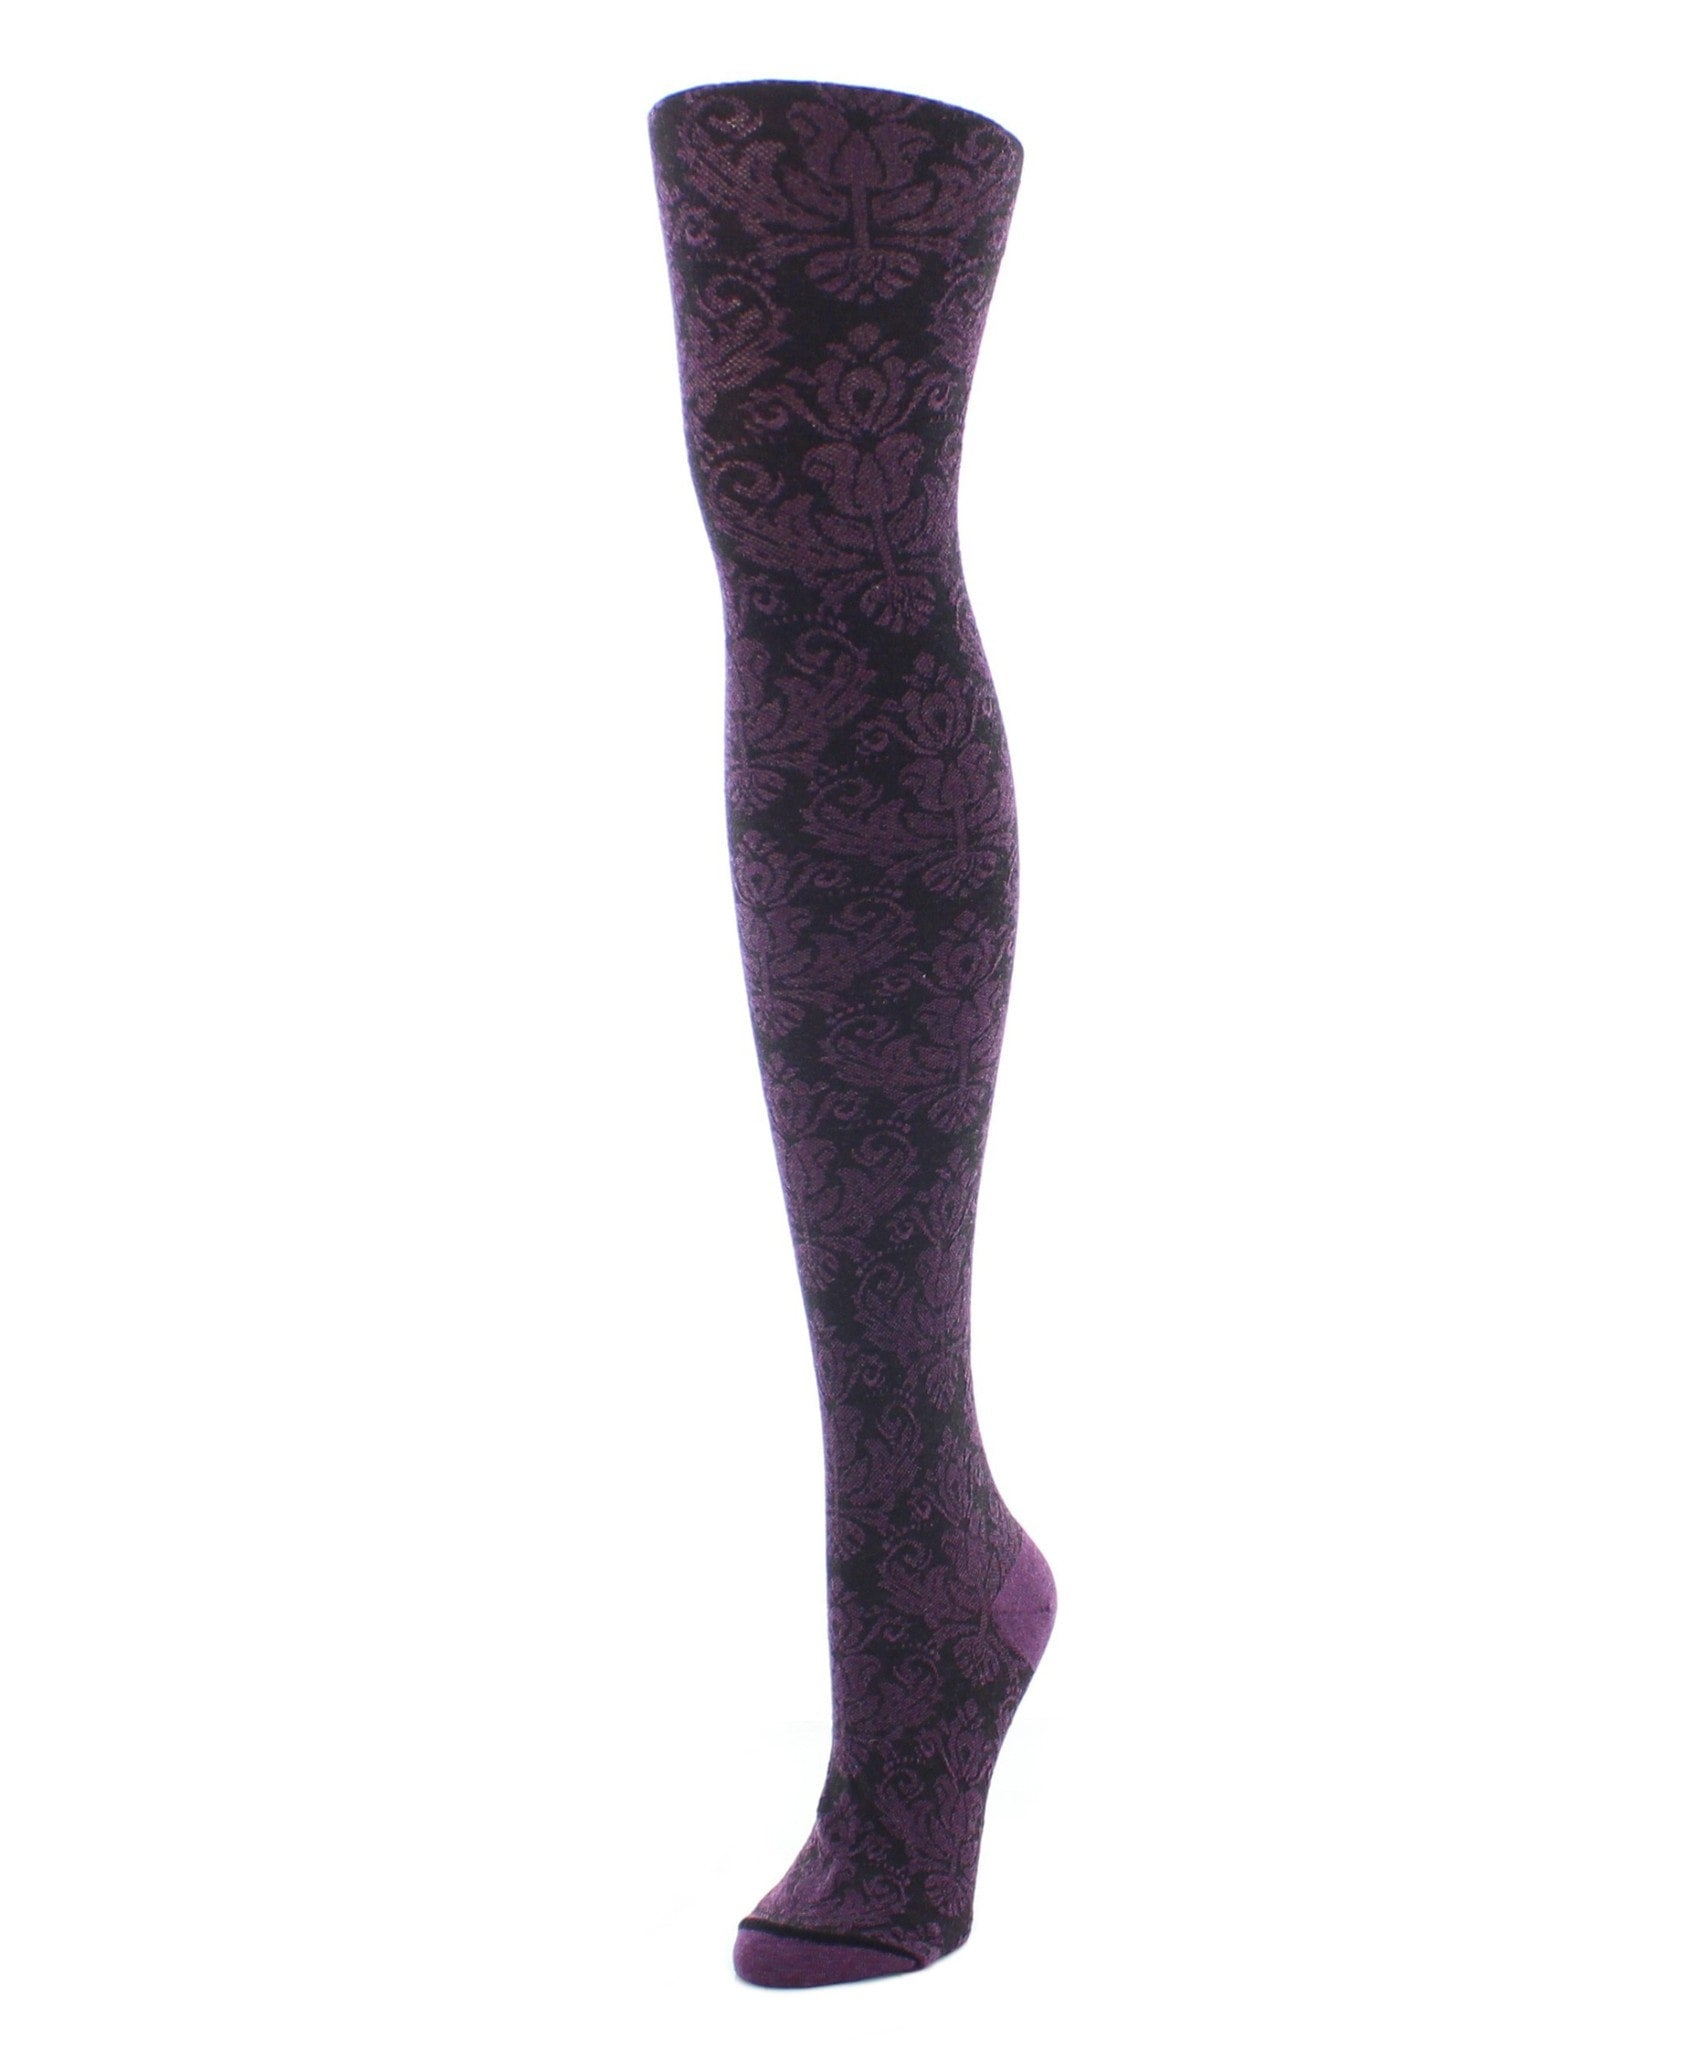 Sweater Tights | Patterned Tights | Baroque Patterned